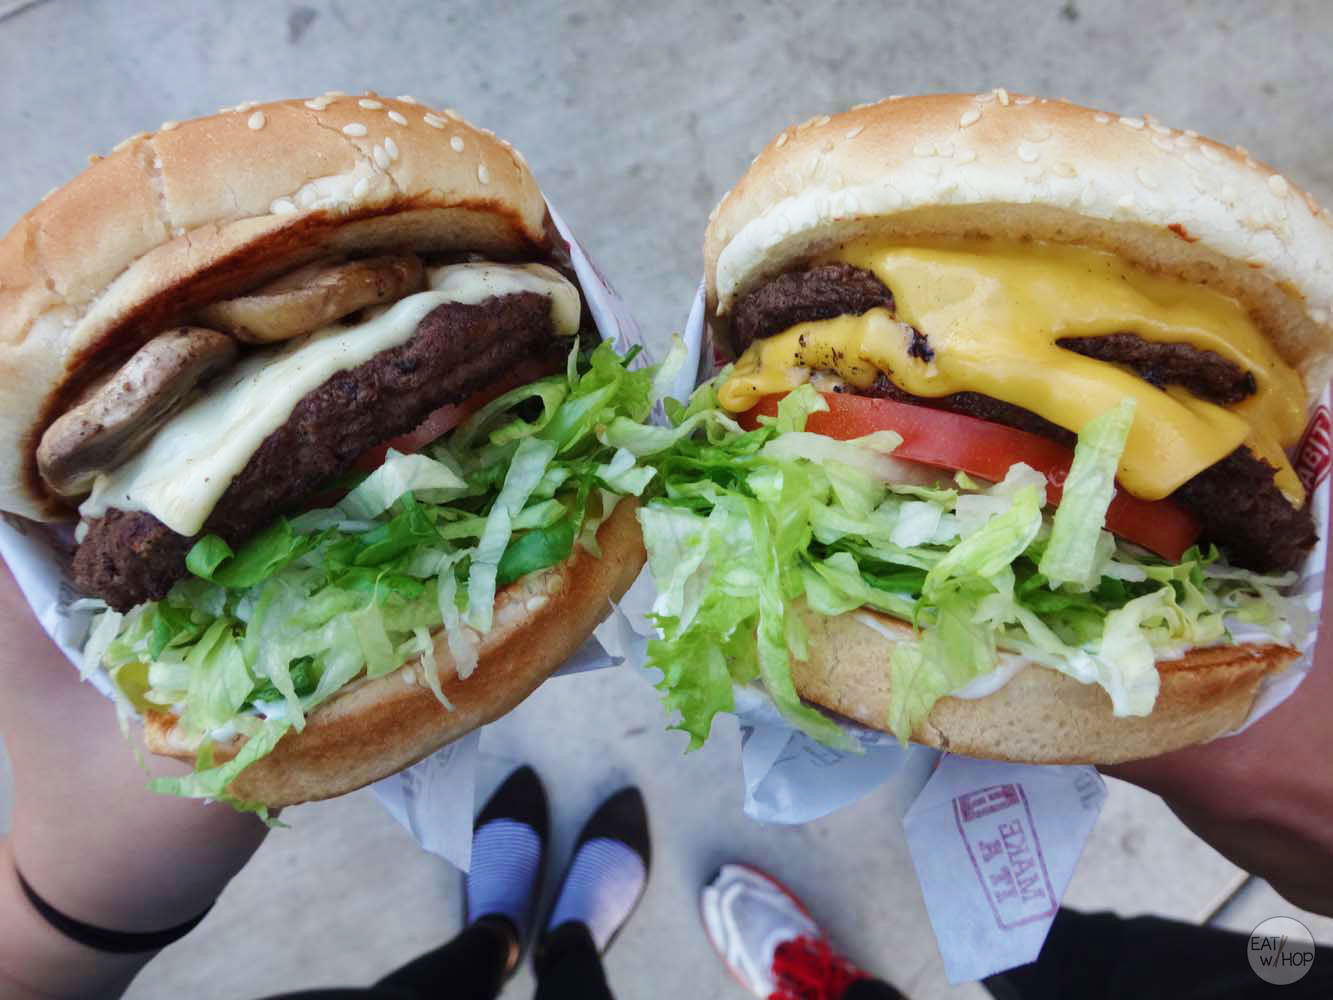 The Habit Burger Grill Burgers Are So Juicy! | Giveaway